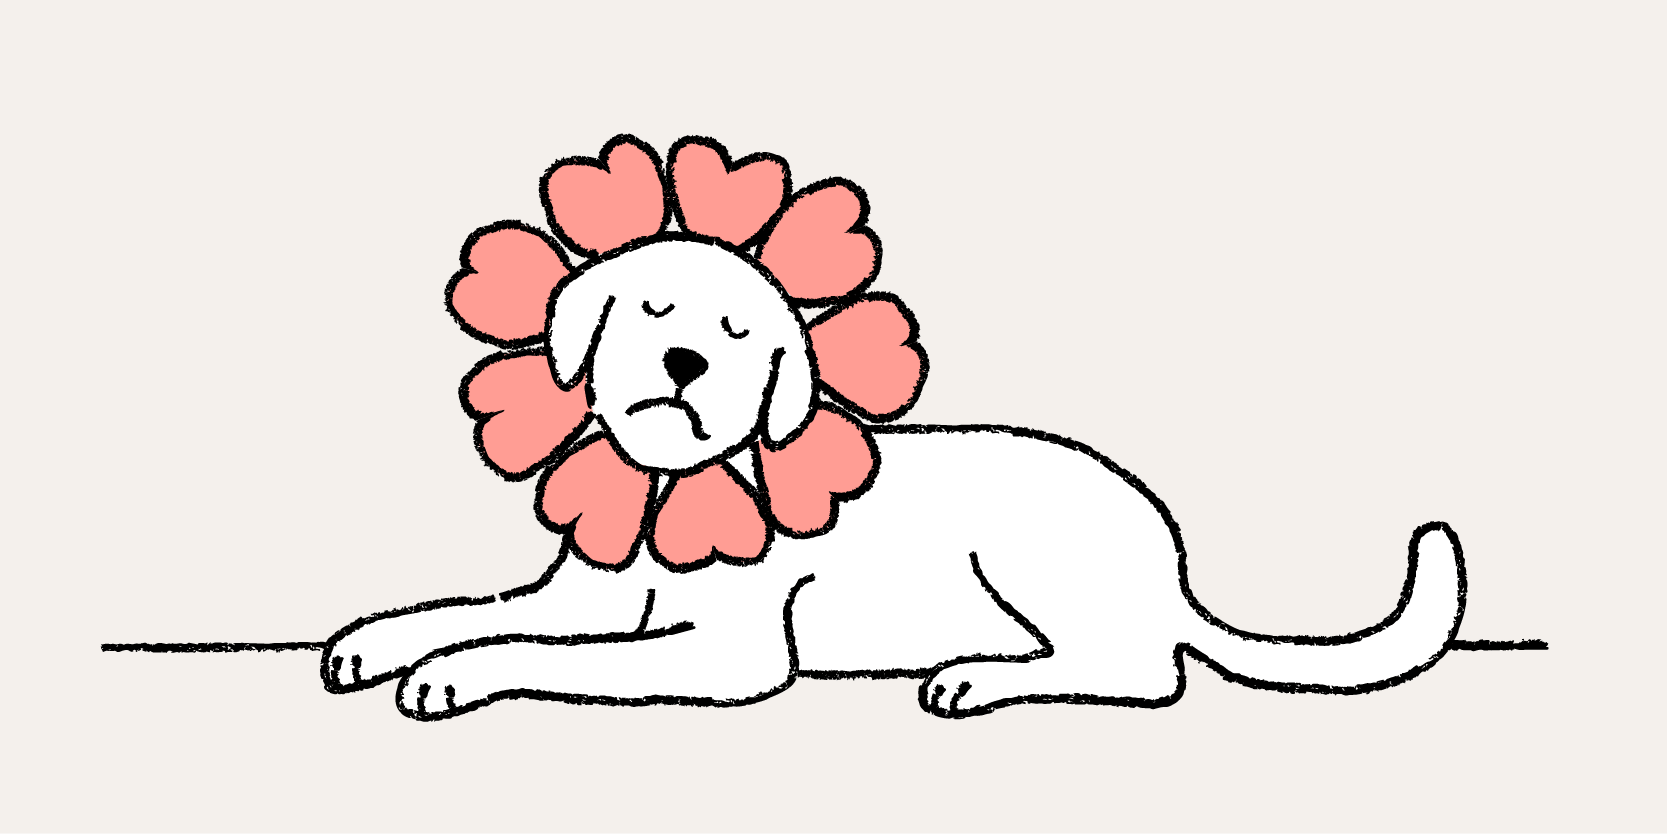 A dog with a flower collar